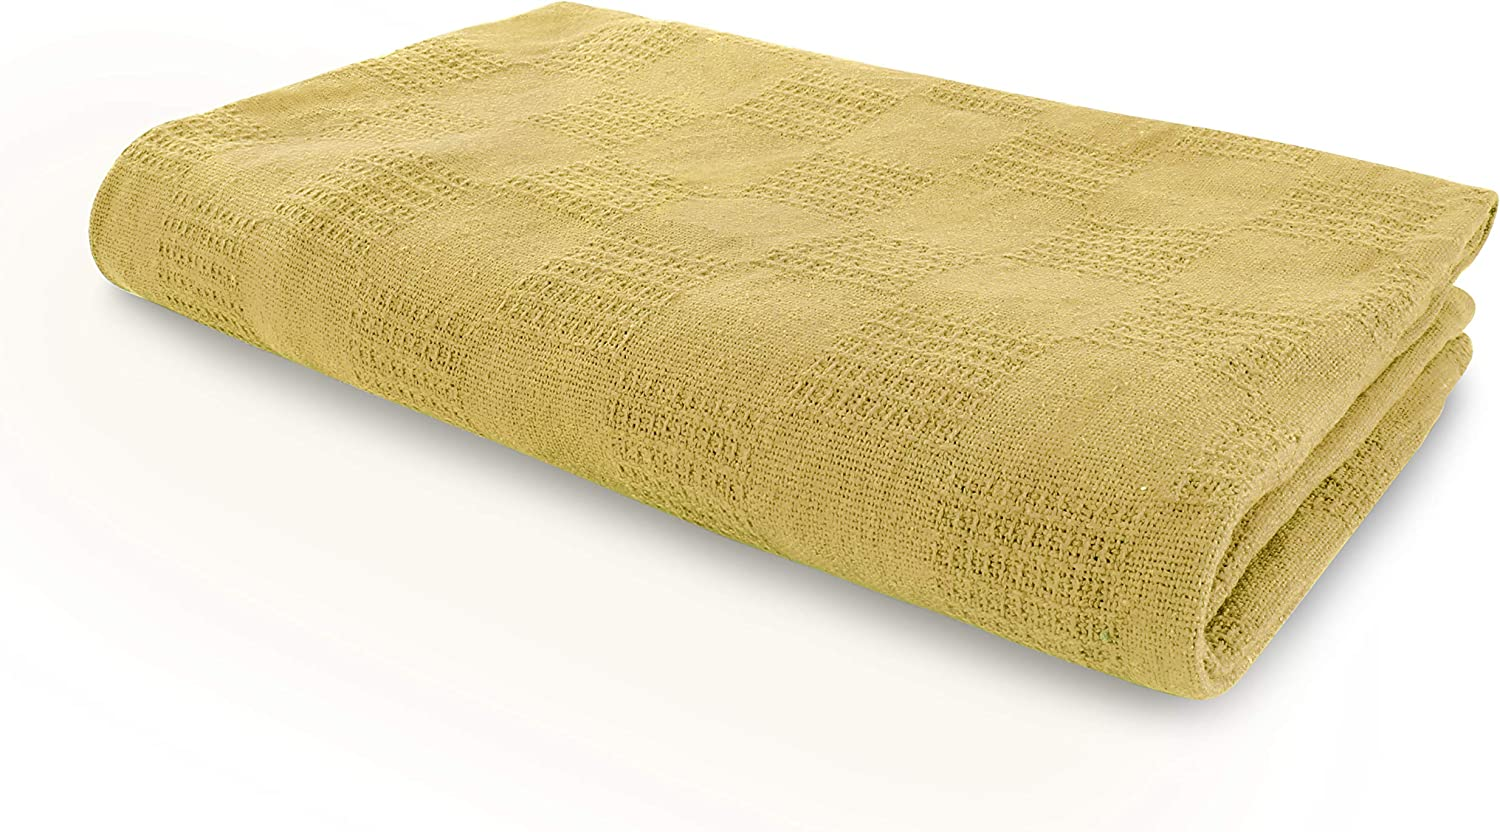 Jmr Beige Hospital/Home Thermal Blanket Snagfree 100% Cotton Coach Throw or Quilt Twin Size 66x90